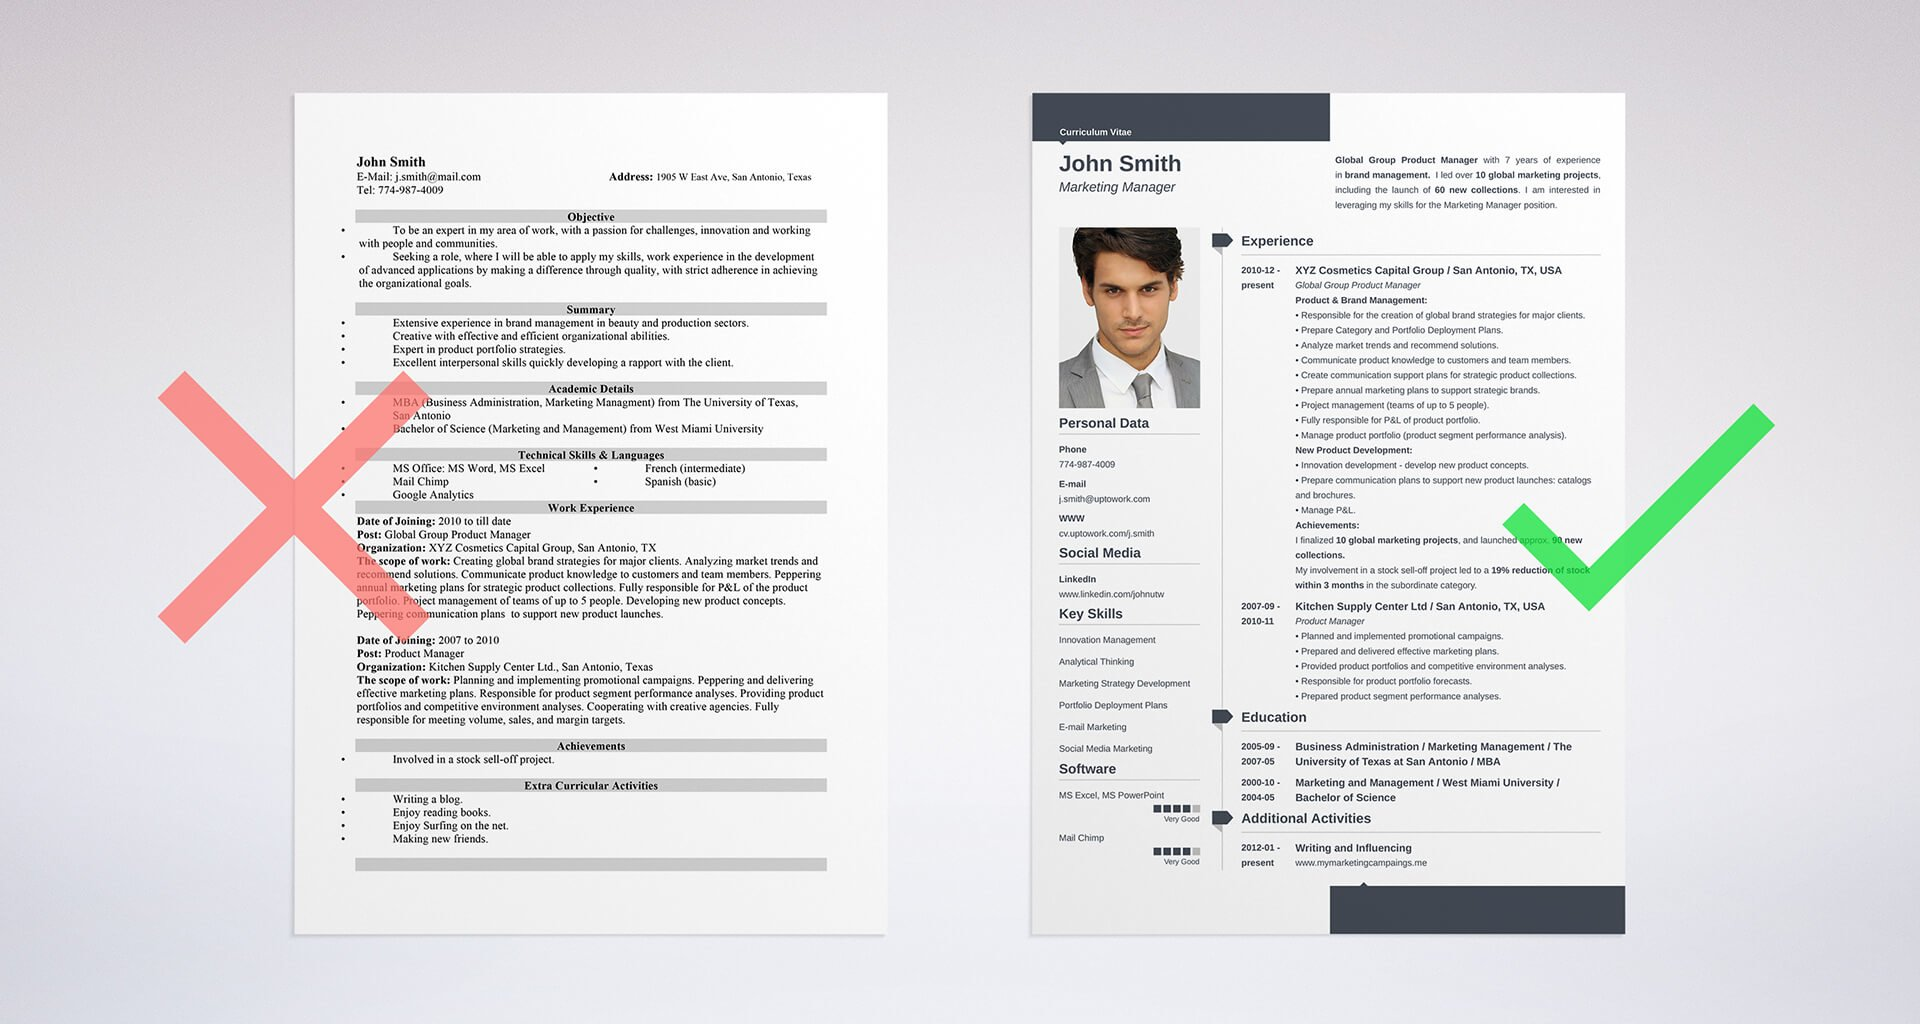 30 best examples of what skills to put on a resume proven tips - Skills For A Job Resume